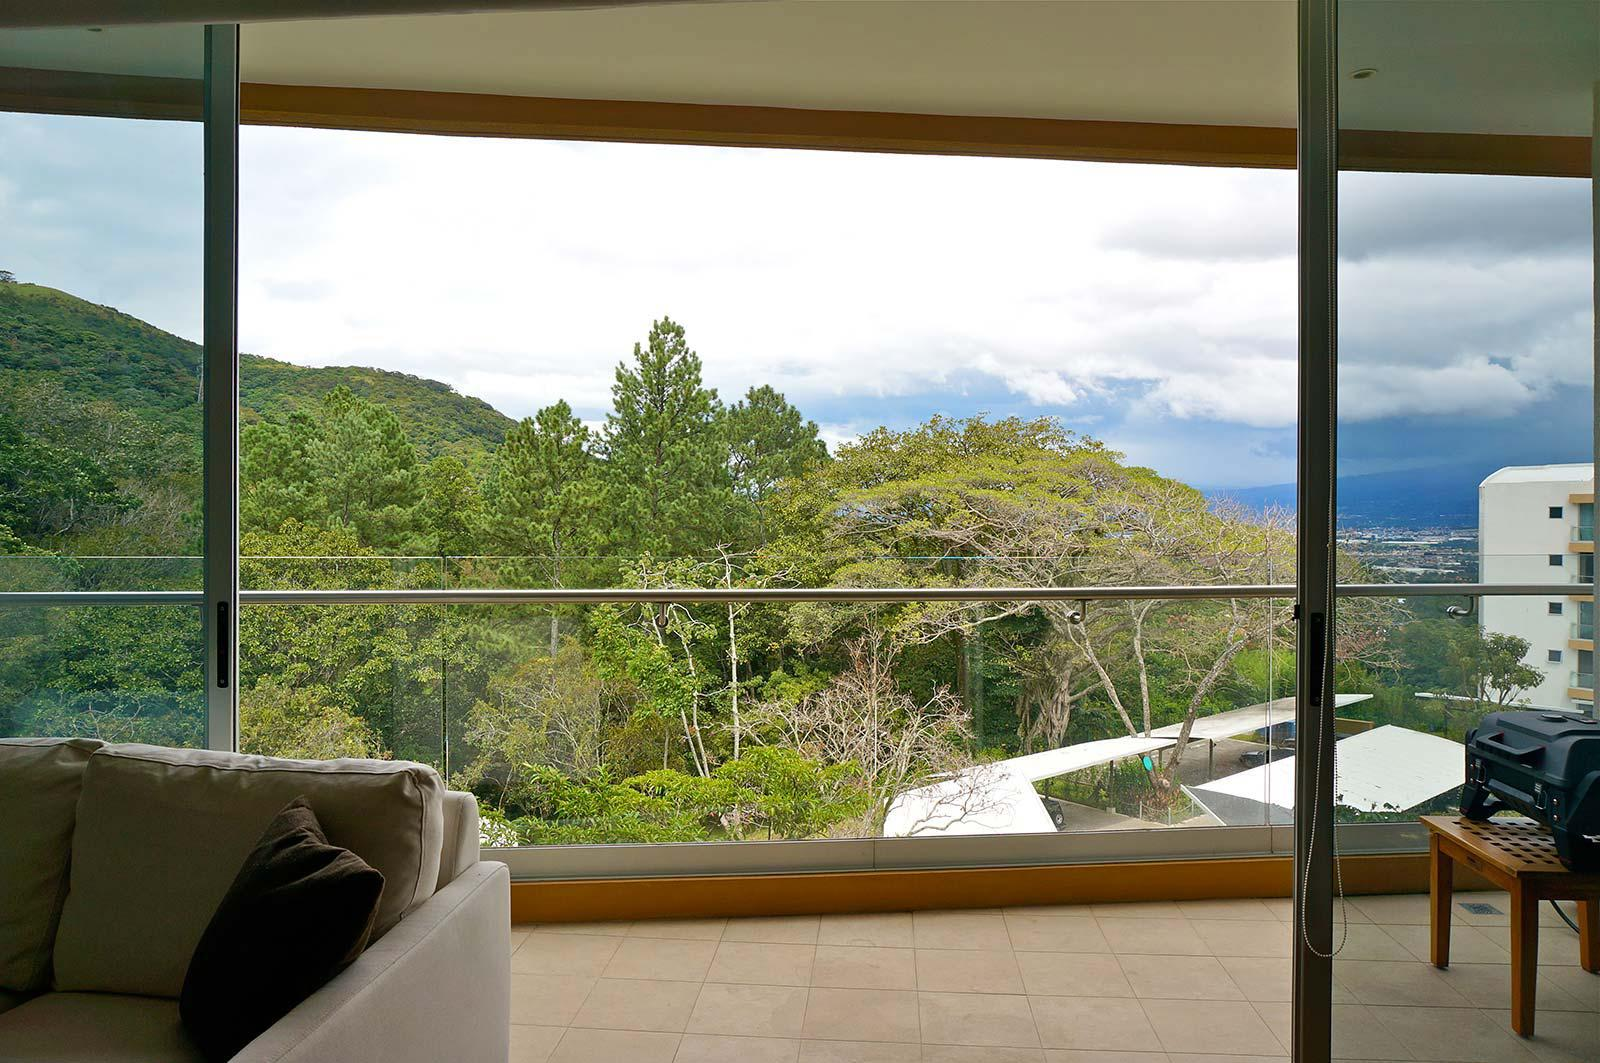 for sale real estate in costarica, apartament with spectacular views, landscape surrounded apartament for sale and rent, eco-friendly apartment with two bedroom